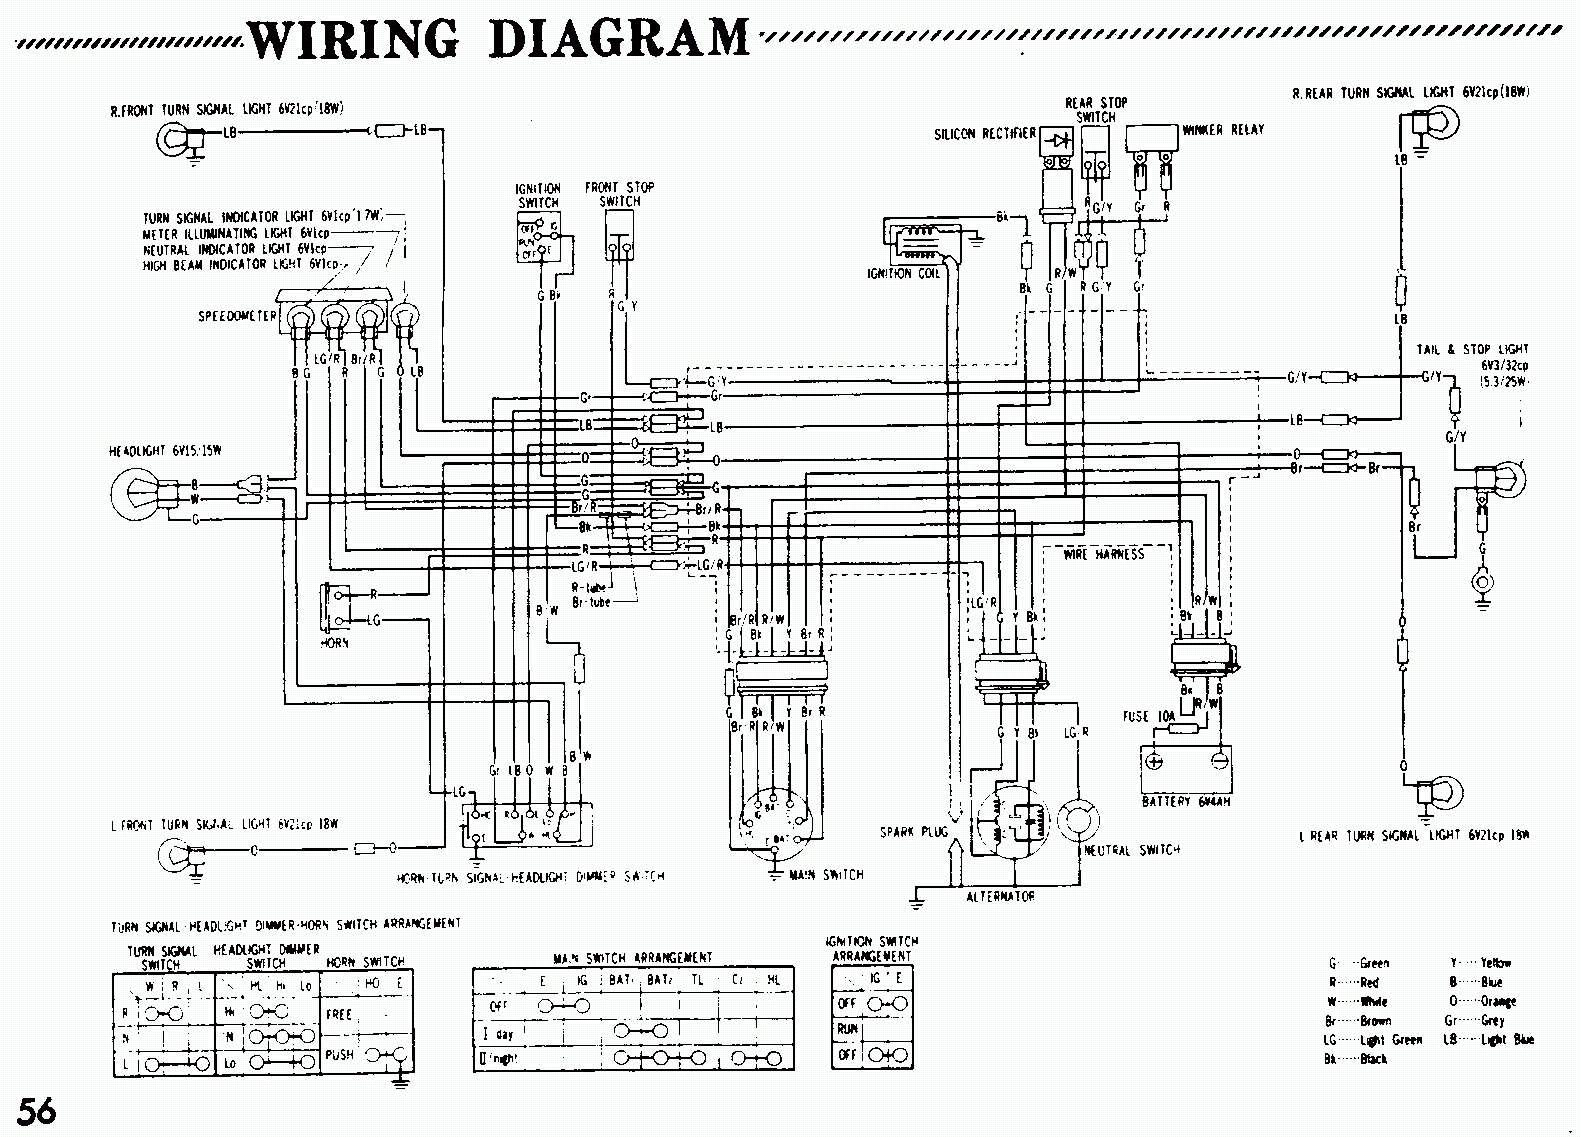 honda ct70 1976 wiring diagram tbolt usa tech database tbolt usa, llc honda ct70 wiring diagram at bayanpartner.co